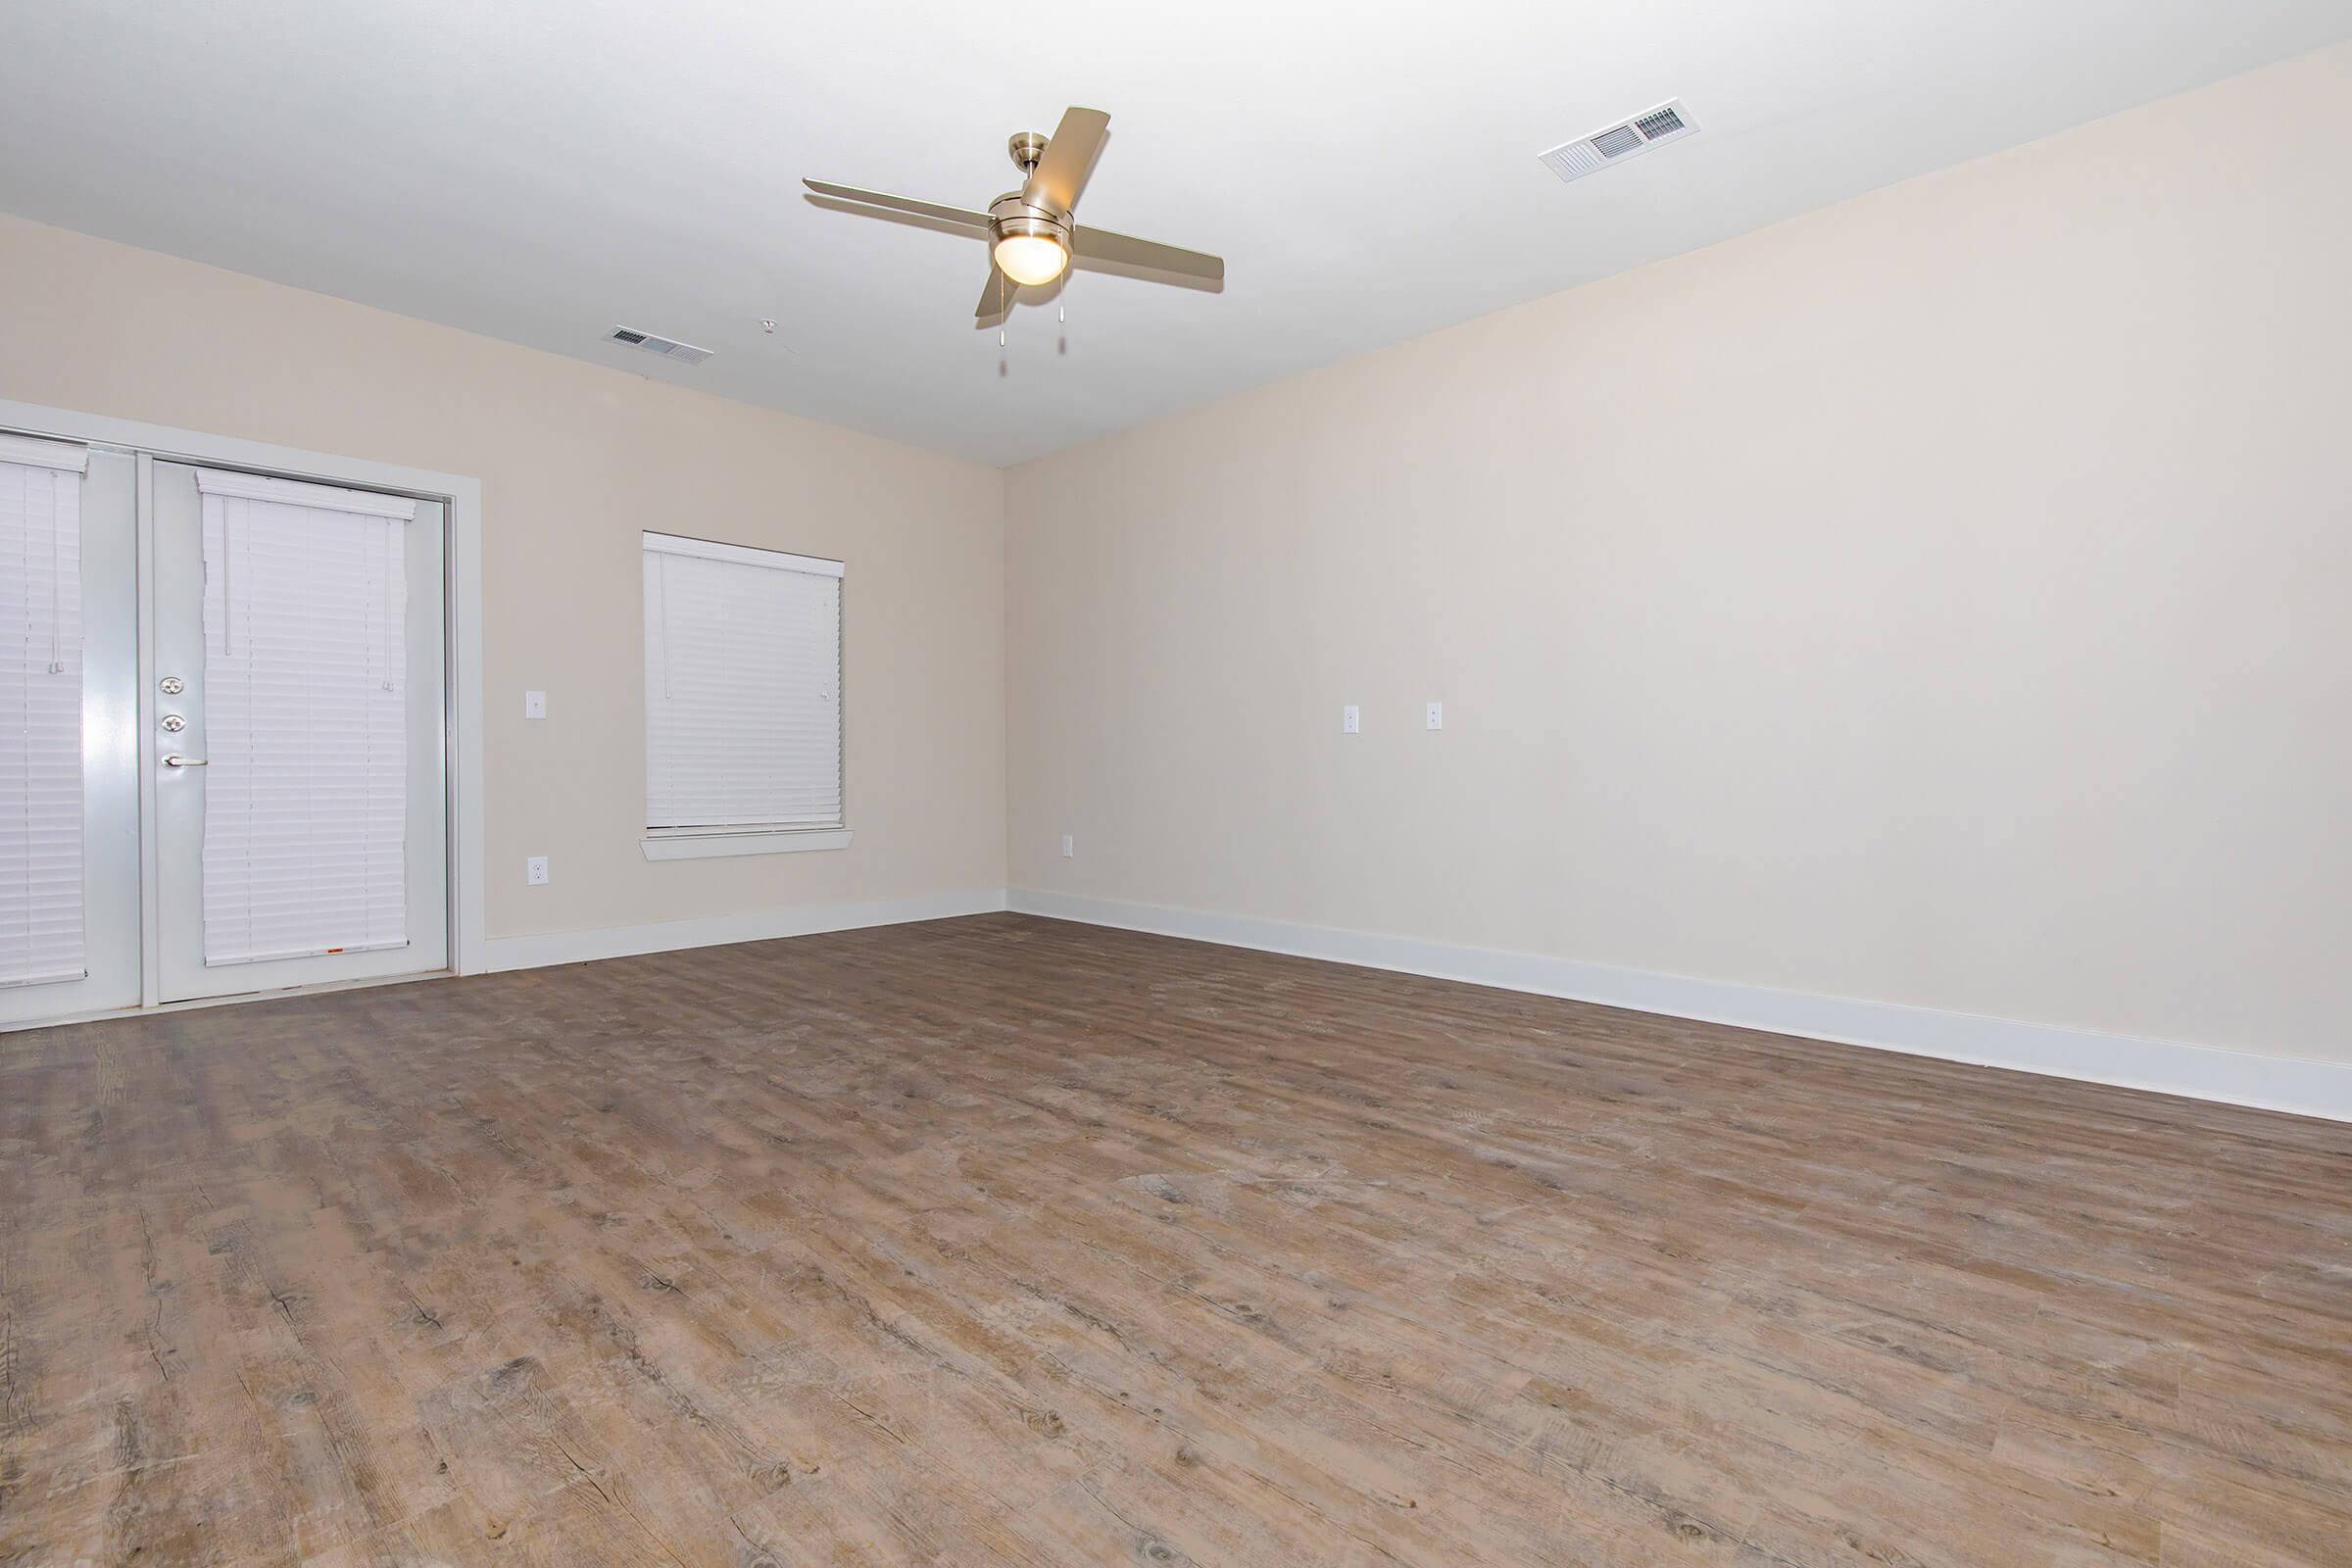 wood plank flooring in our active adult living community